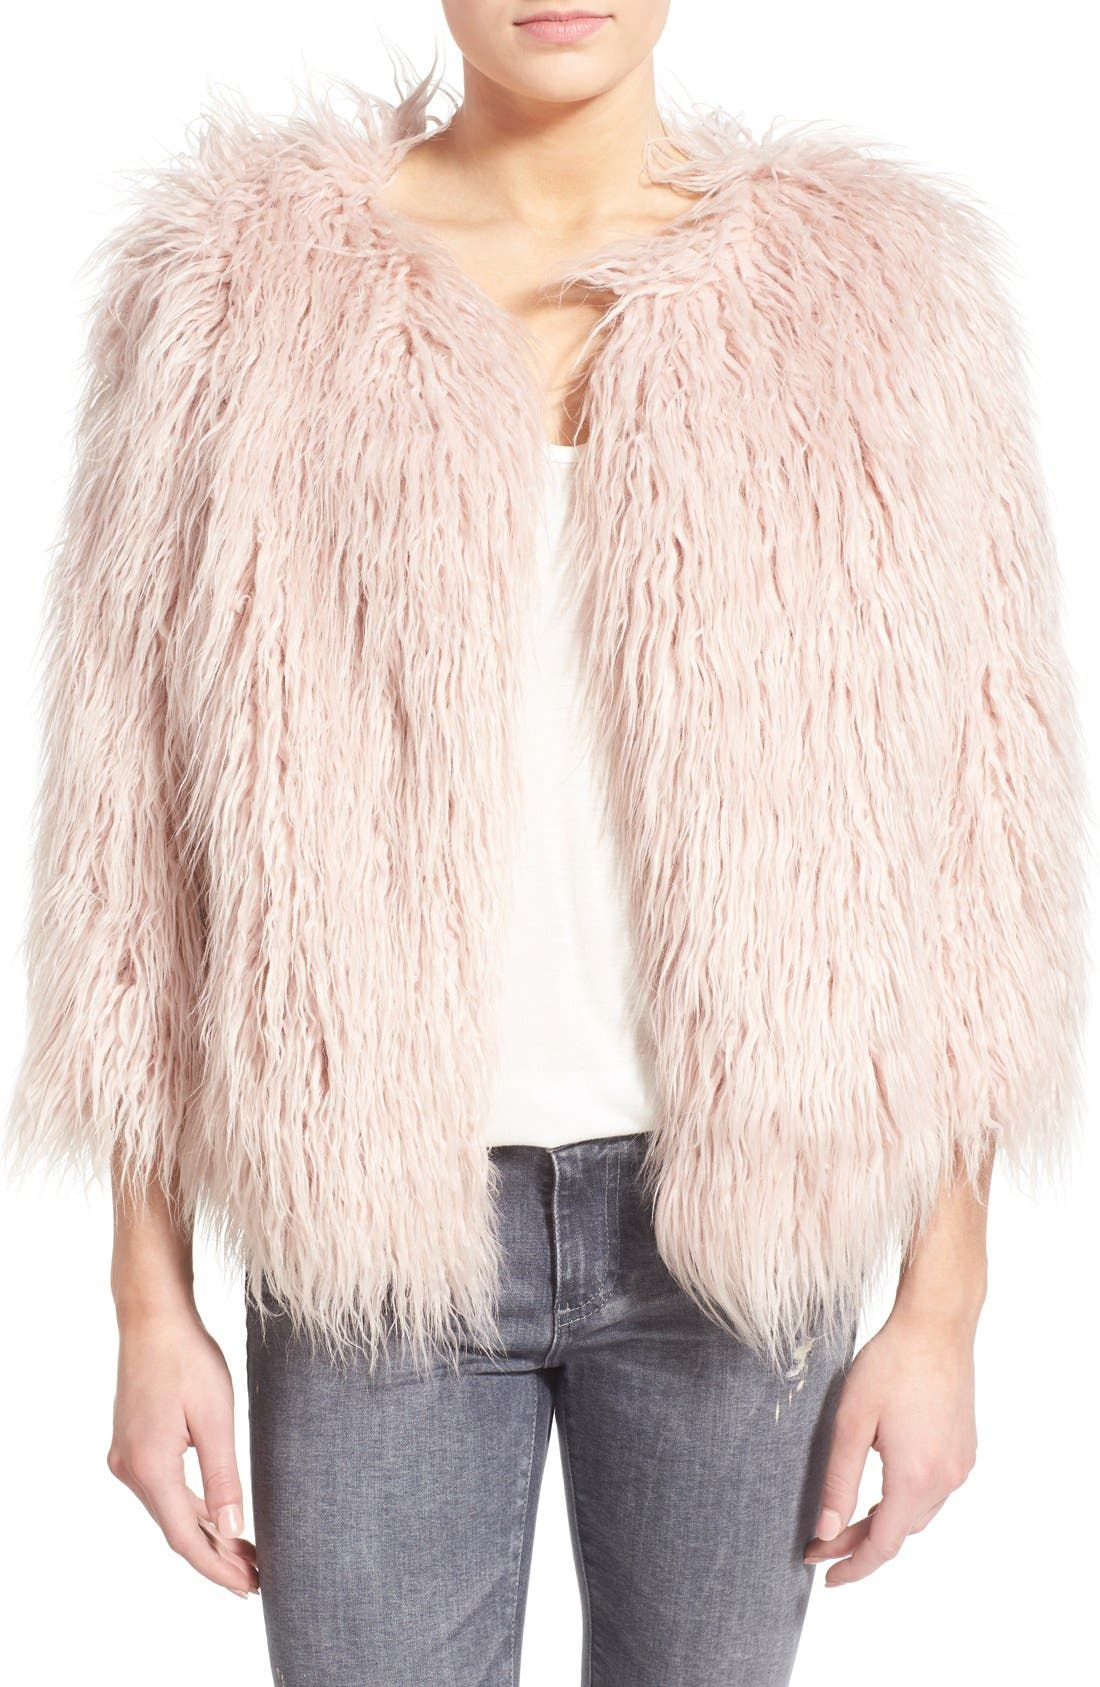 Alternate Image 1 Selected - Pam & Gela 'Mongolian' Faux Fur Coat